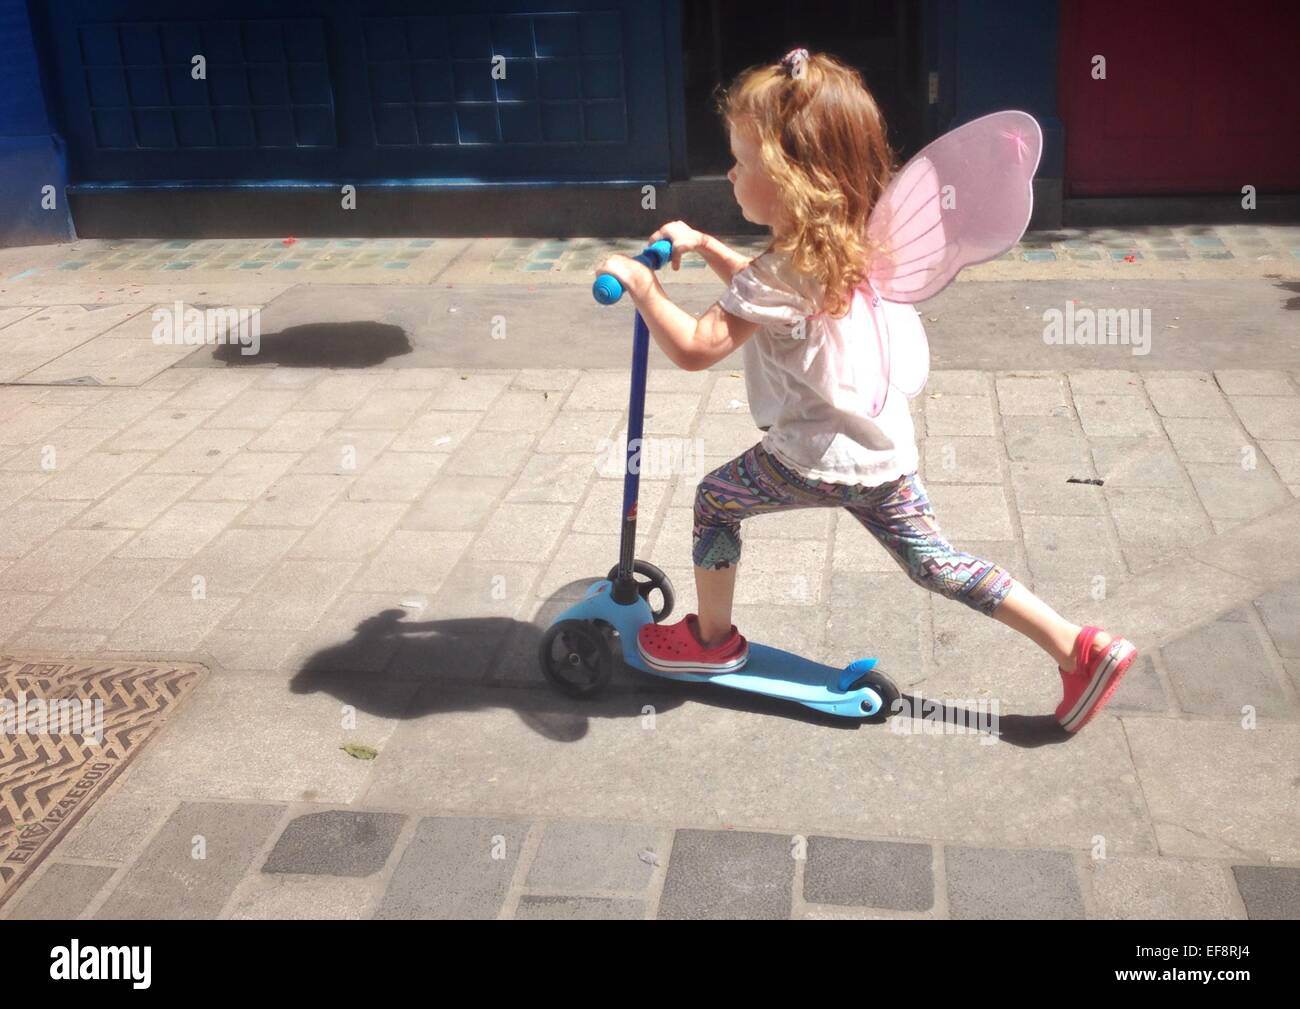 UK, England, London, Portrait of girl (2-3) with fairy wings riding scooter on city pavement Stock Photo